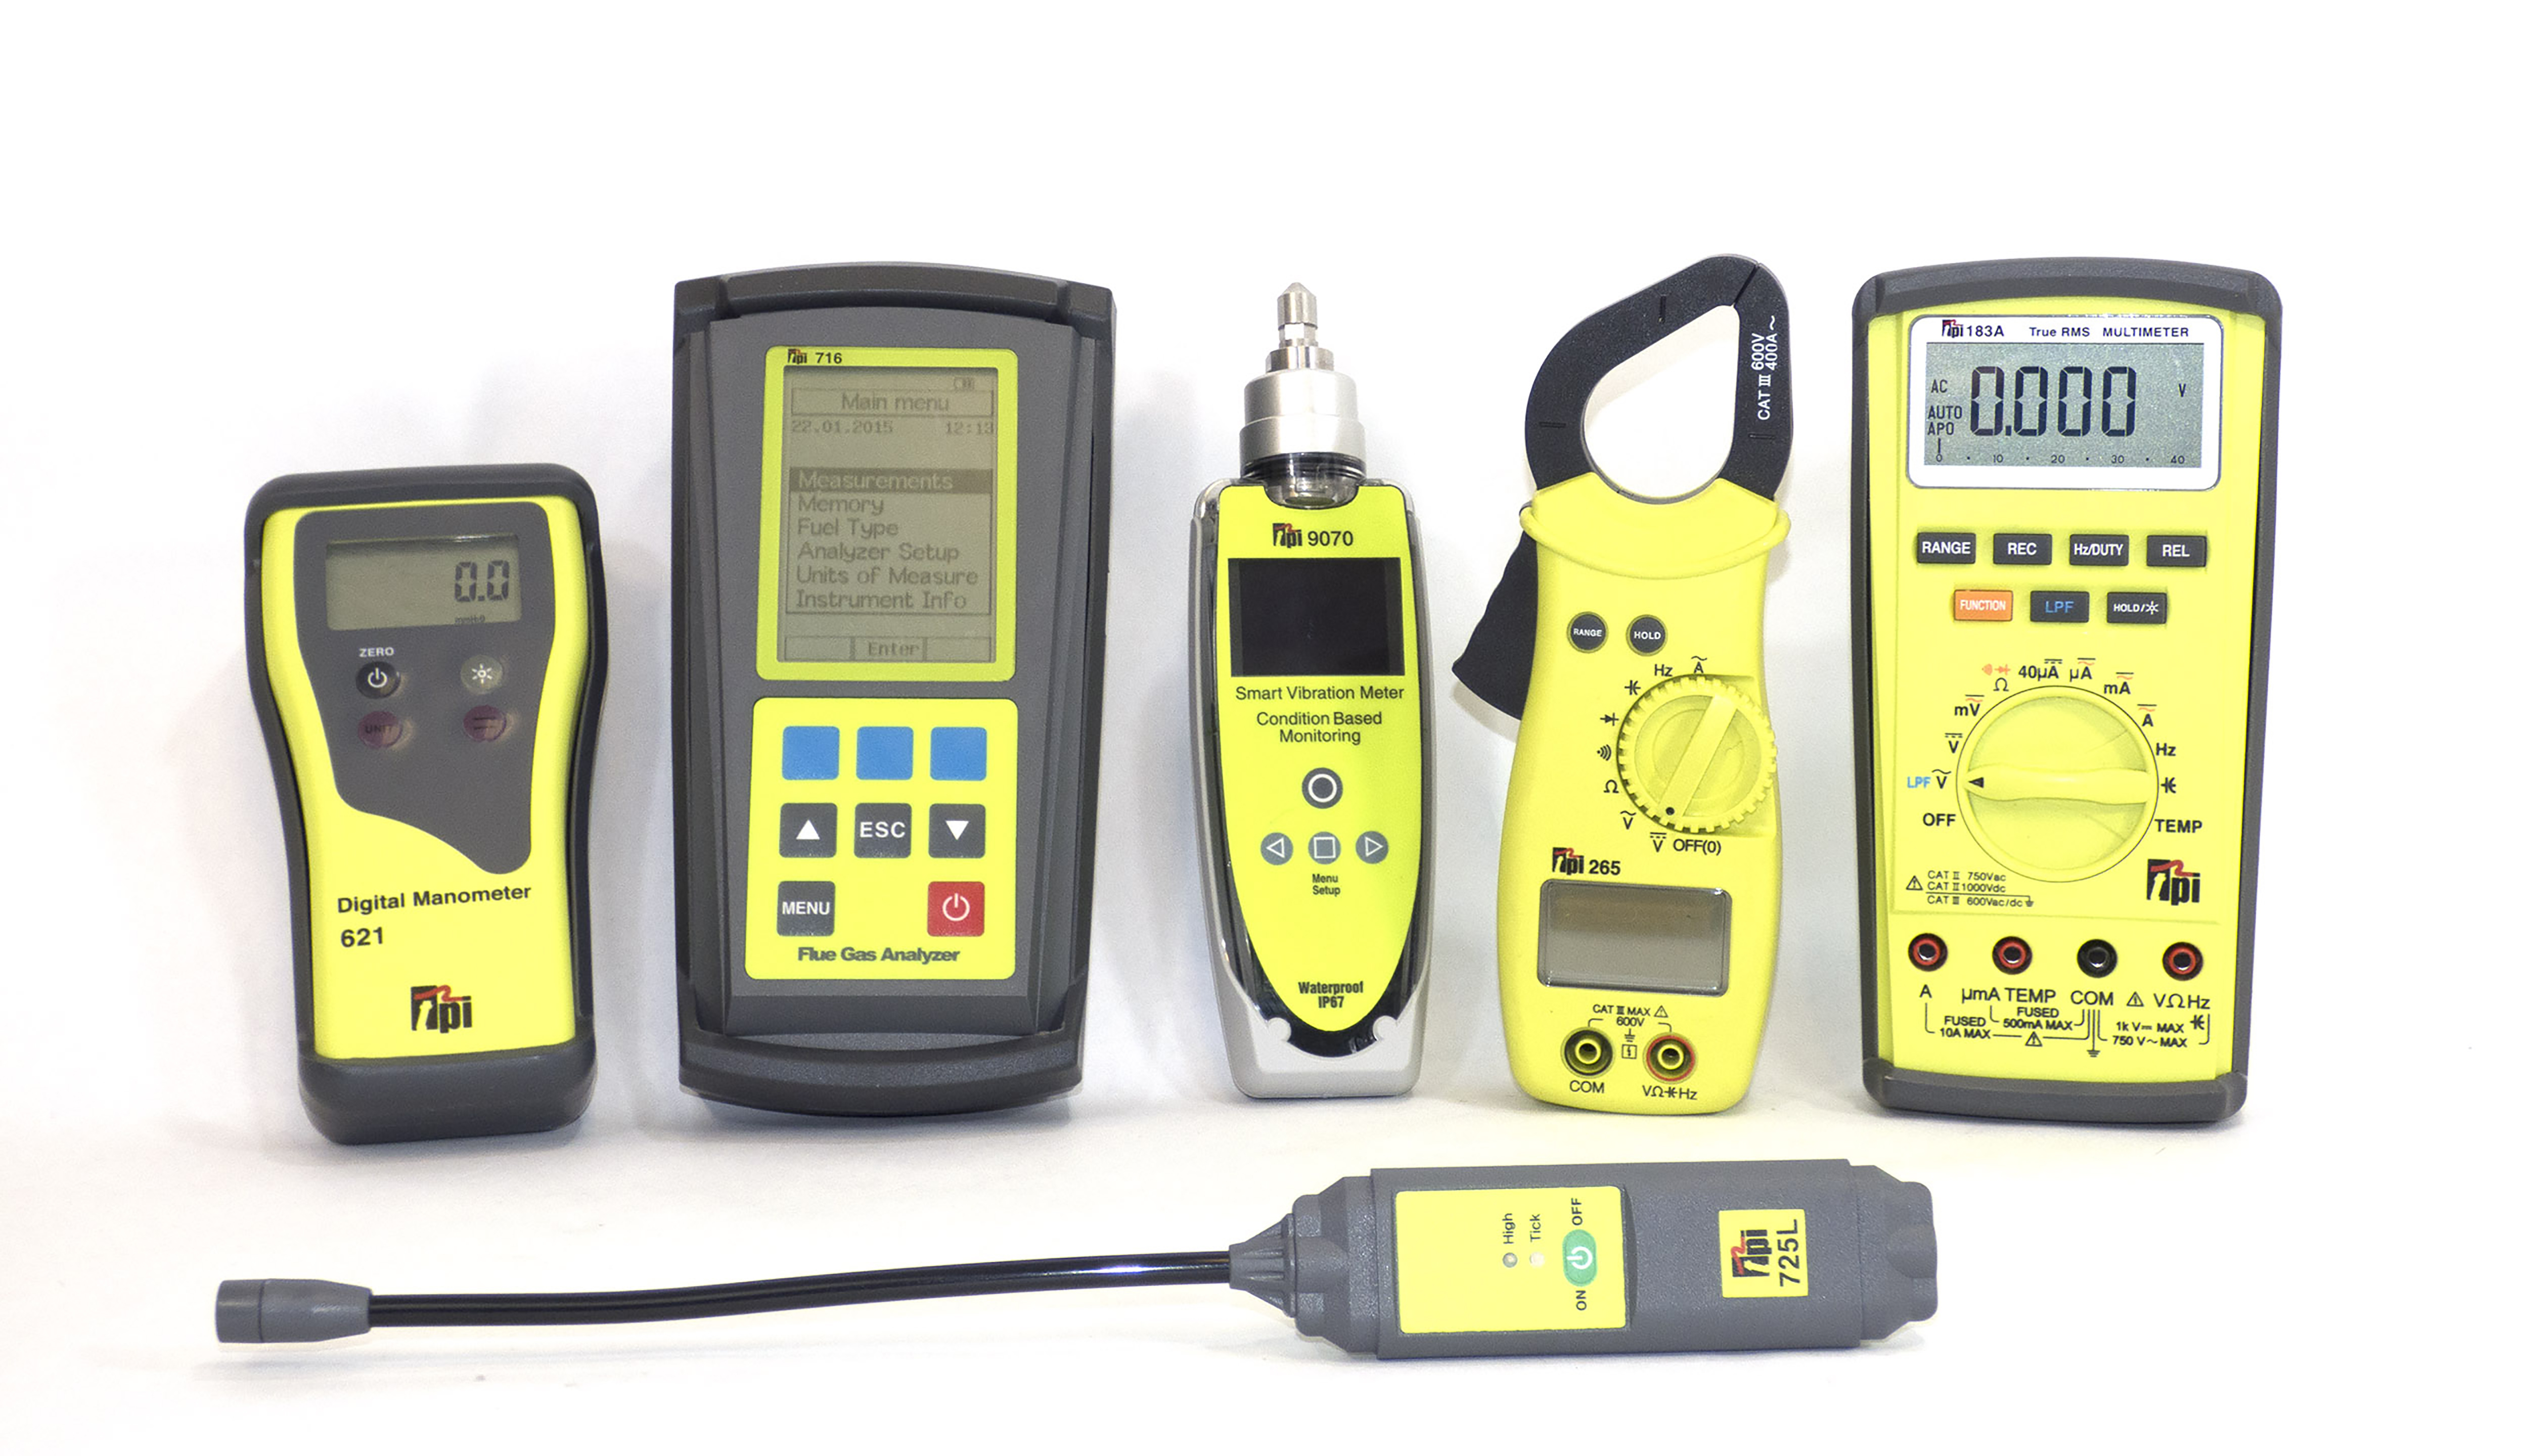 TPI Handheld measurement equipment